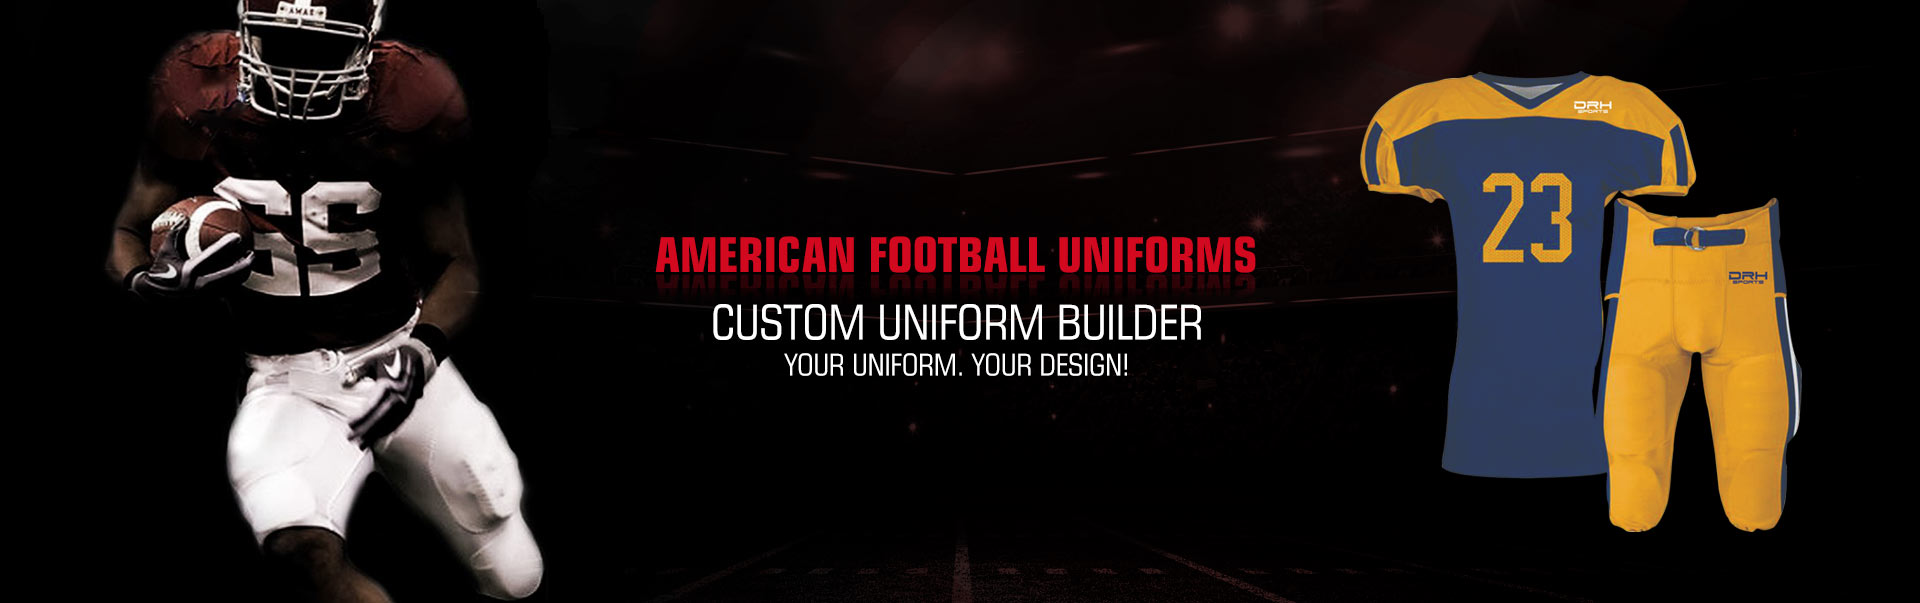 American Football Uniform Wholesaler, Suppliers in Philadelphia